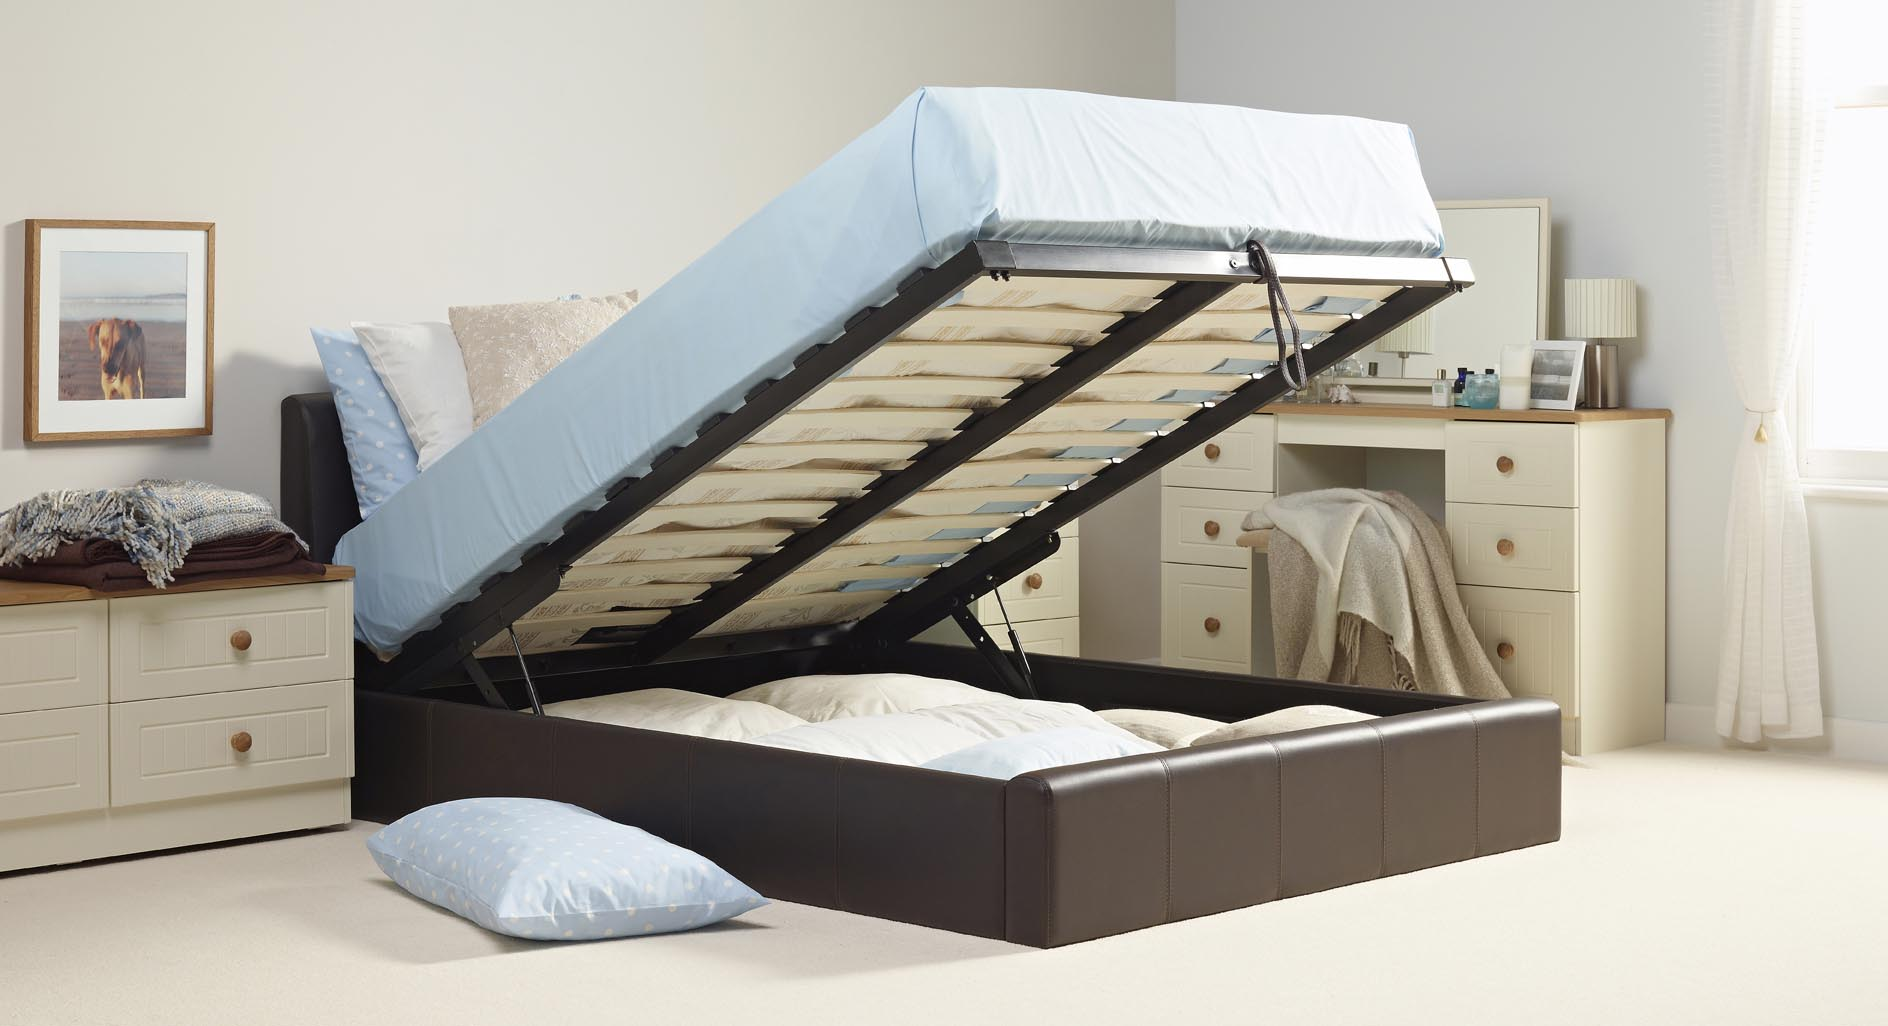 Double Bed With Storage Underneath Nz